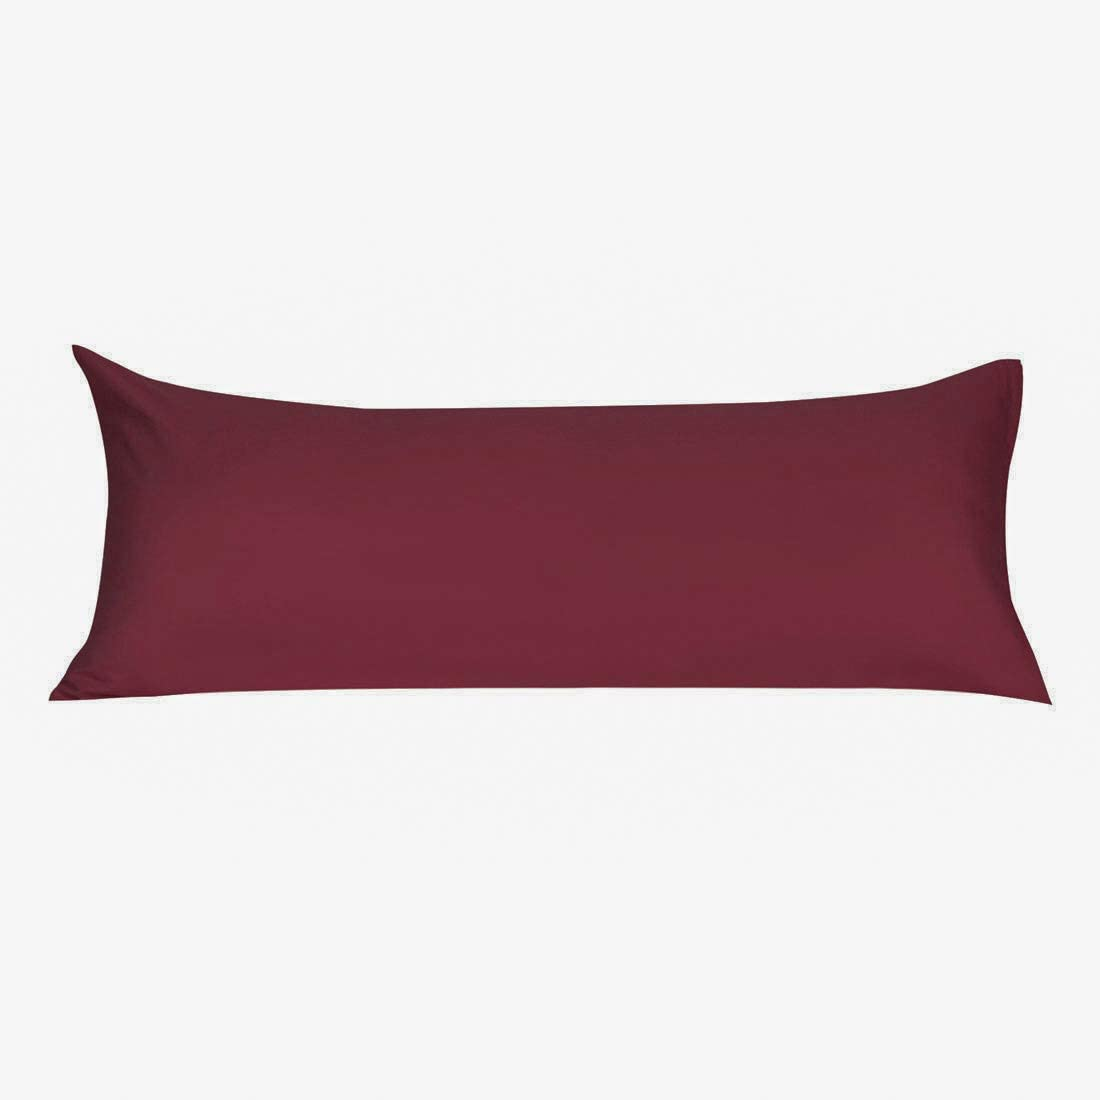 uxcell Soft Microfiber Body Pillow Cover with Zipper Closure, Long Pillow Cases for Body Pillows Wine Body (20